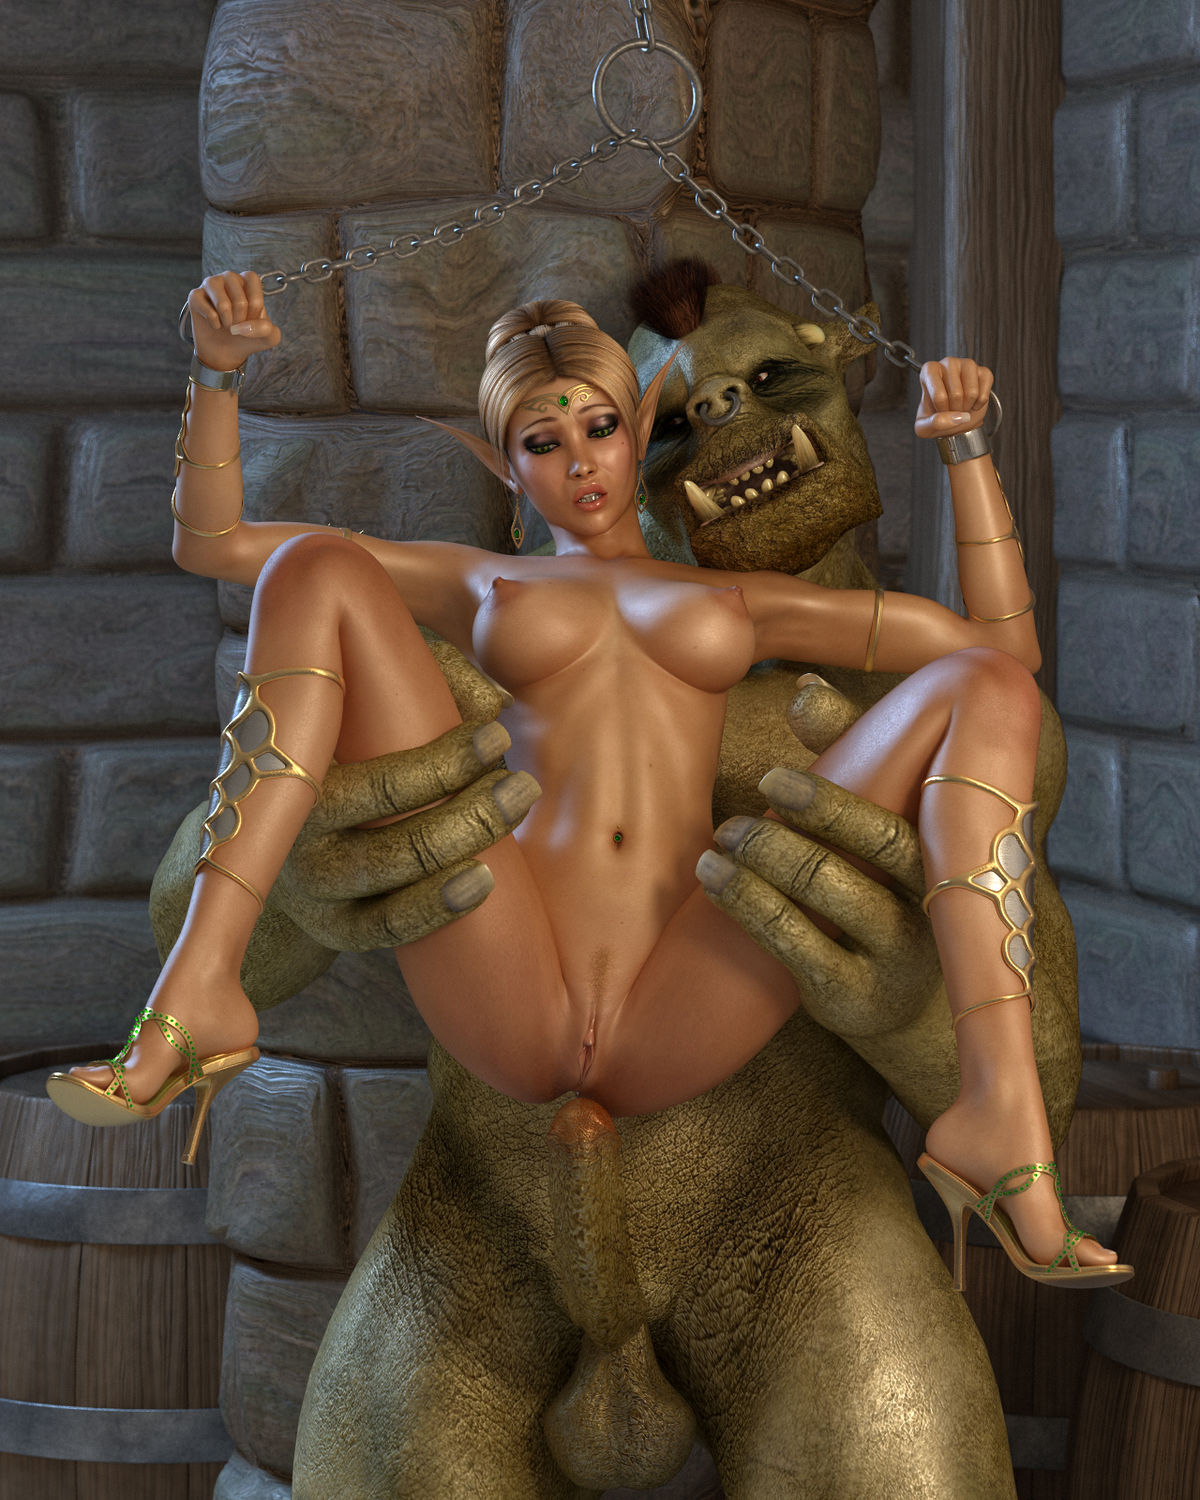 Monster elfen porn erotic download